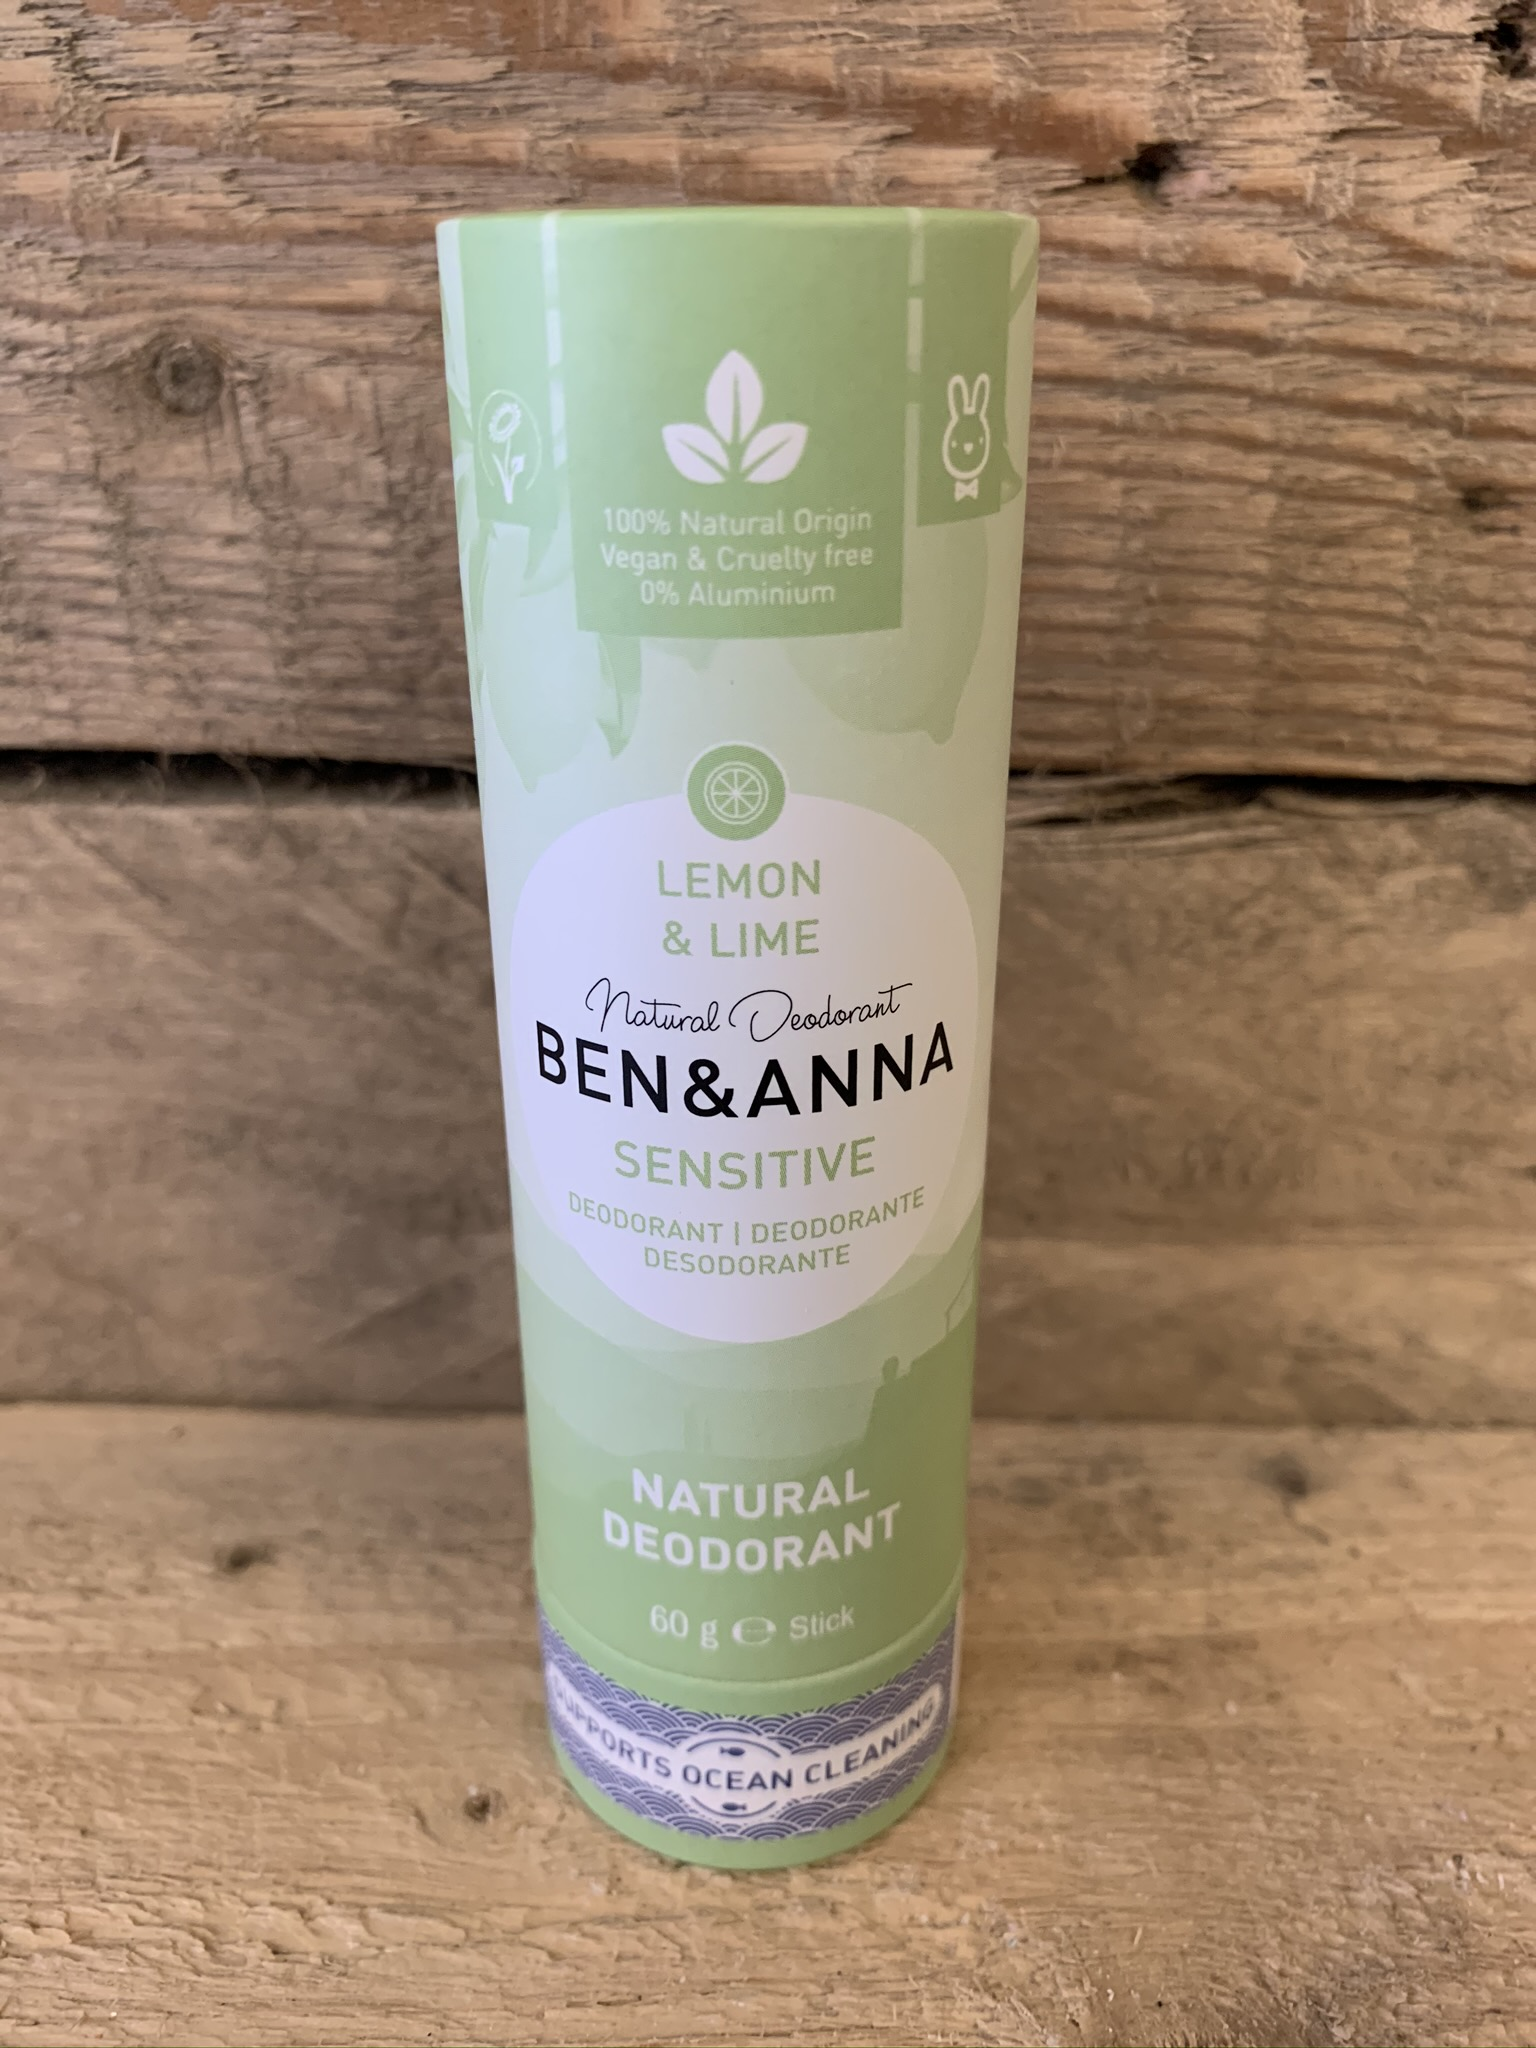 Ben & Anna Sensitive Lemon and Lime Natural Deodorant Stick